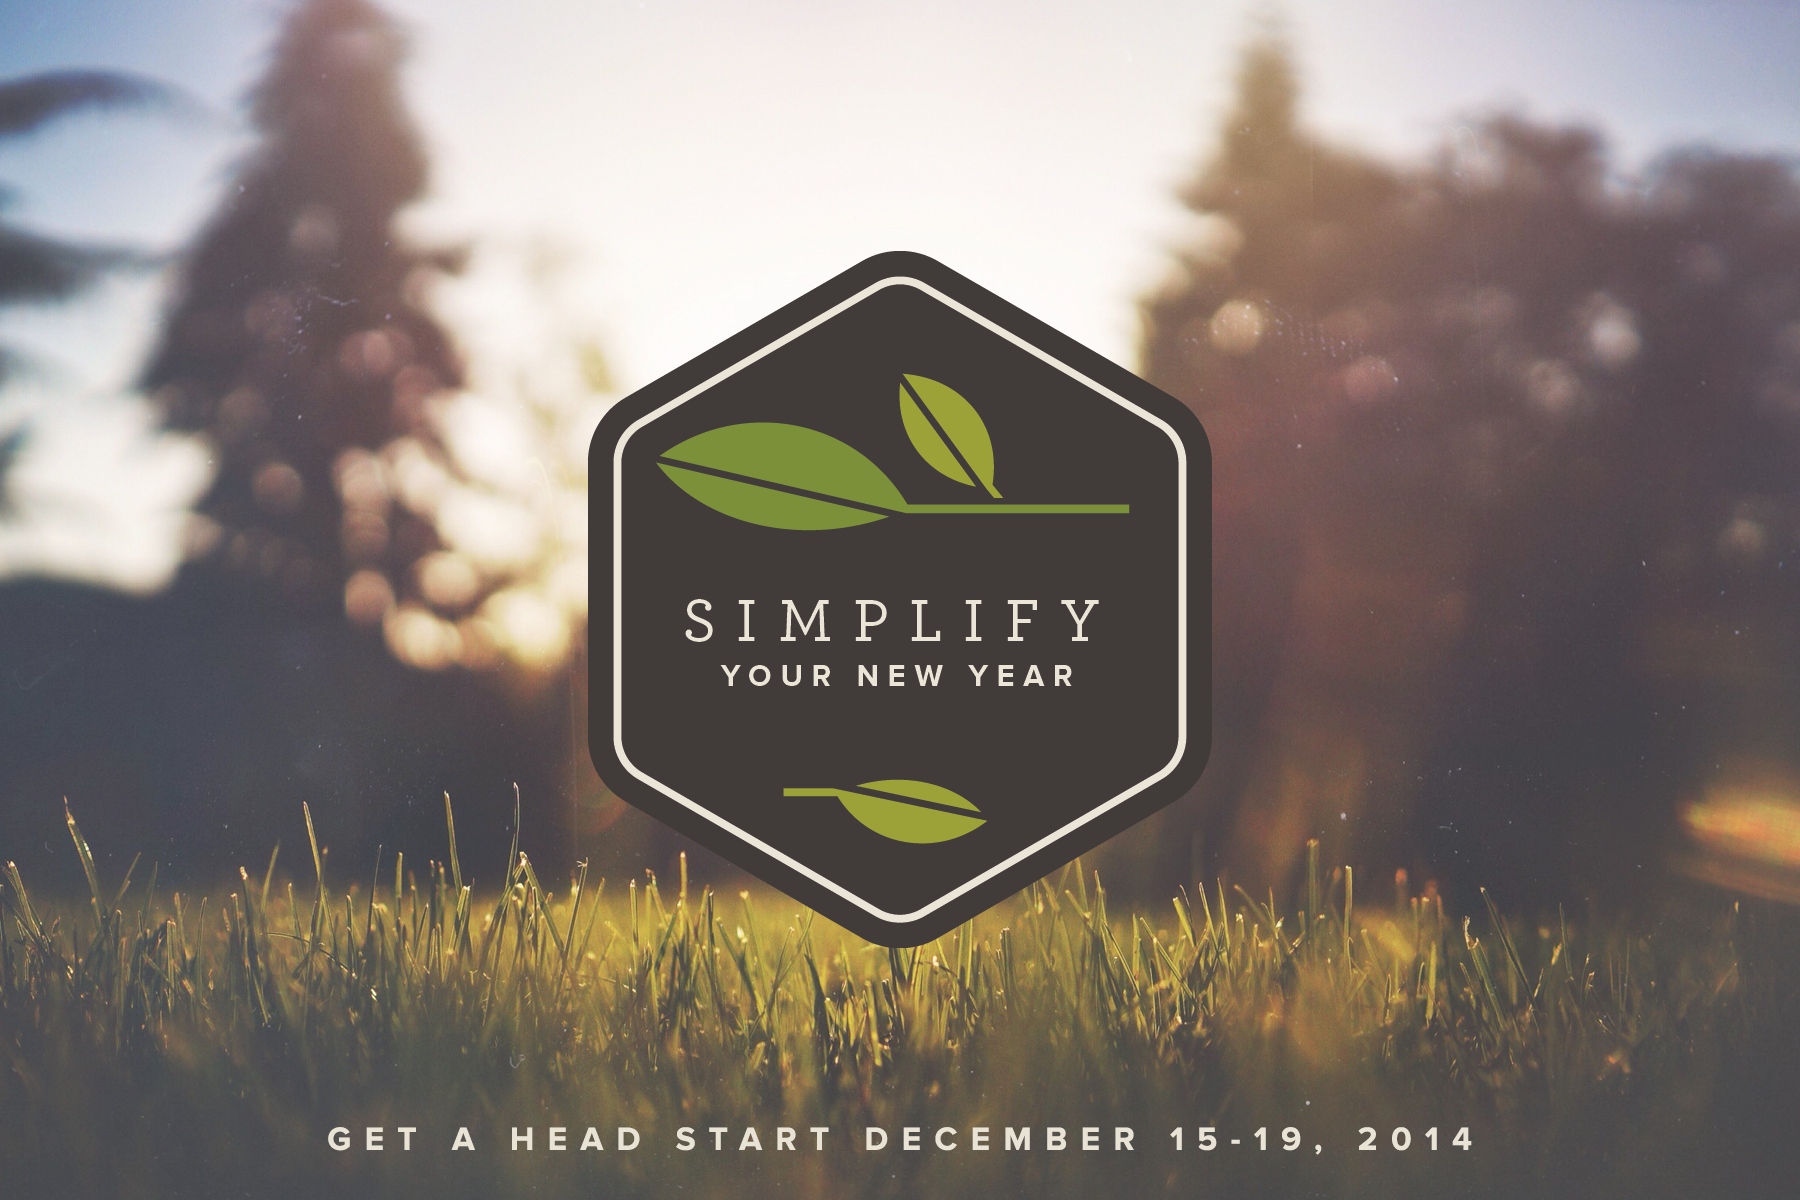 Get a head start on 2015 with the Simplify Your New Year free mini class at Simple Scrapper